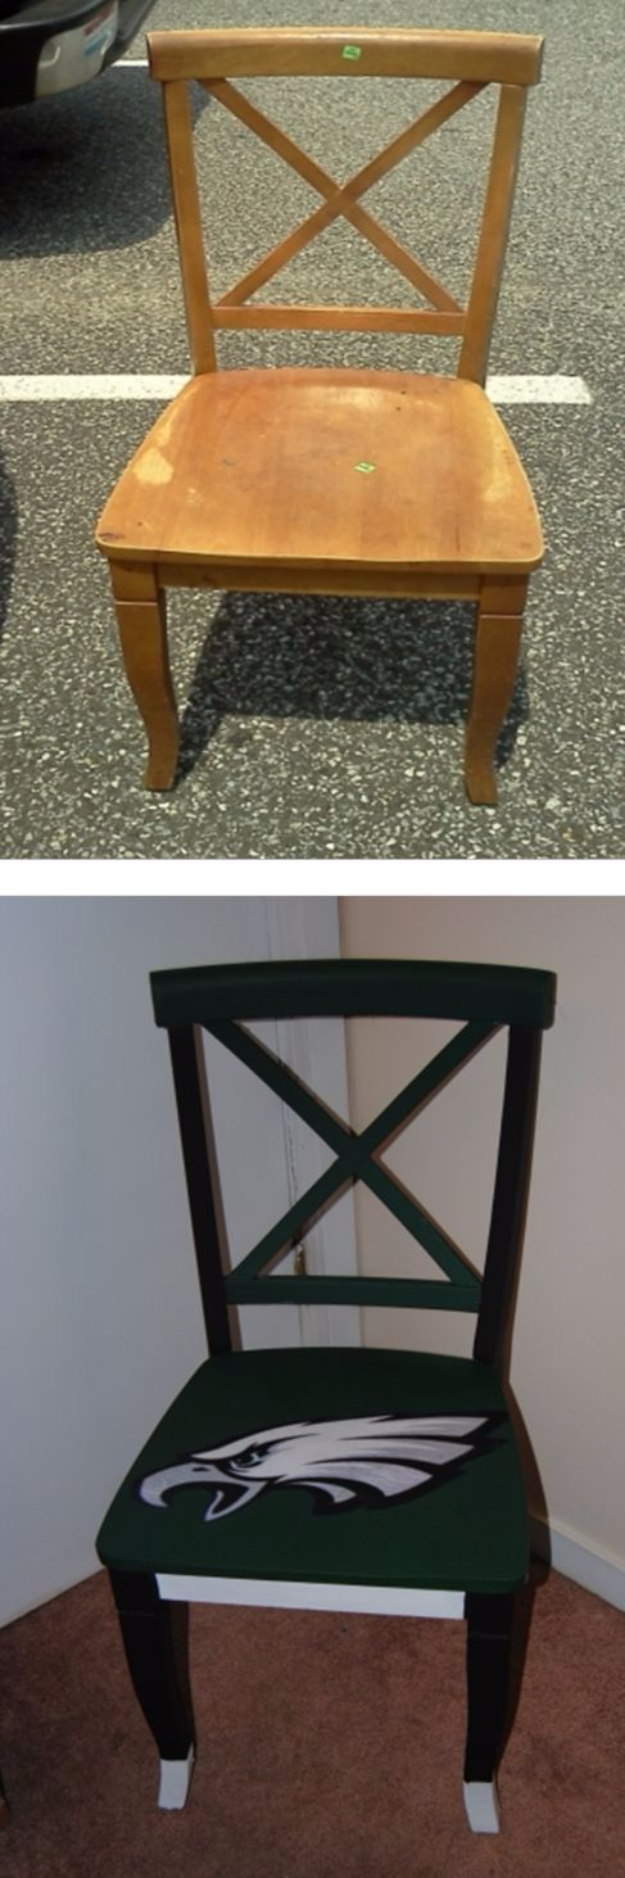 DIY Projects for the Sports Fan - Upcycled Hand Painted Decoupage Sports Lovers Chair - Crafts and DIY Ideas for Men - Football, Baseball, Basketball, Soccer and Golf - Wall Art, DIY Gifts, Easy Gift Ideas, Room and Home Decor #sports #diygifts #giftsformen